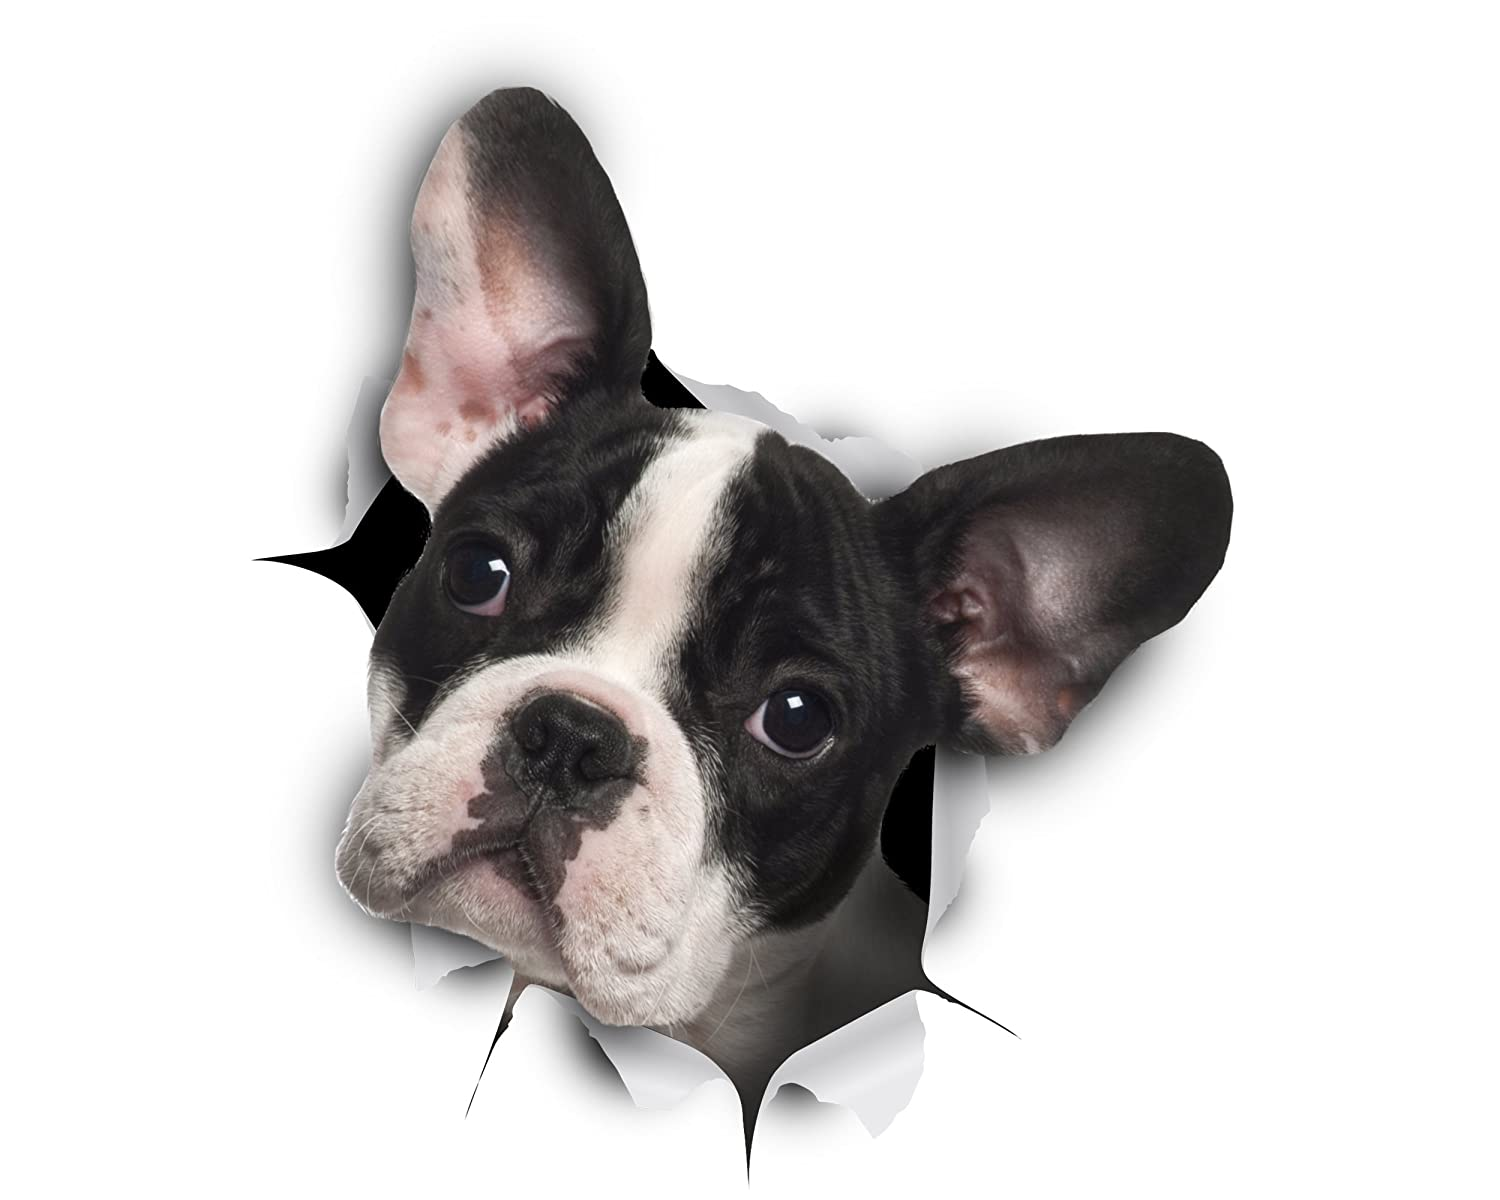 Winston & Bear 3D Dog Stickers - 2 Pack - Black and White French Bulldog Stickers for Wall, Fridge, Toilet and More - Retail Packaged Frenchie Stickers